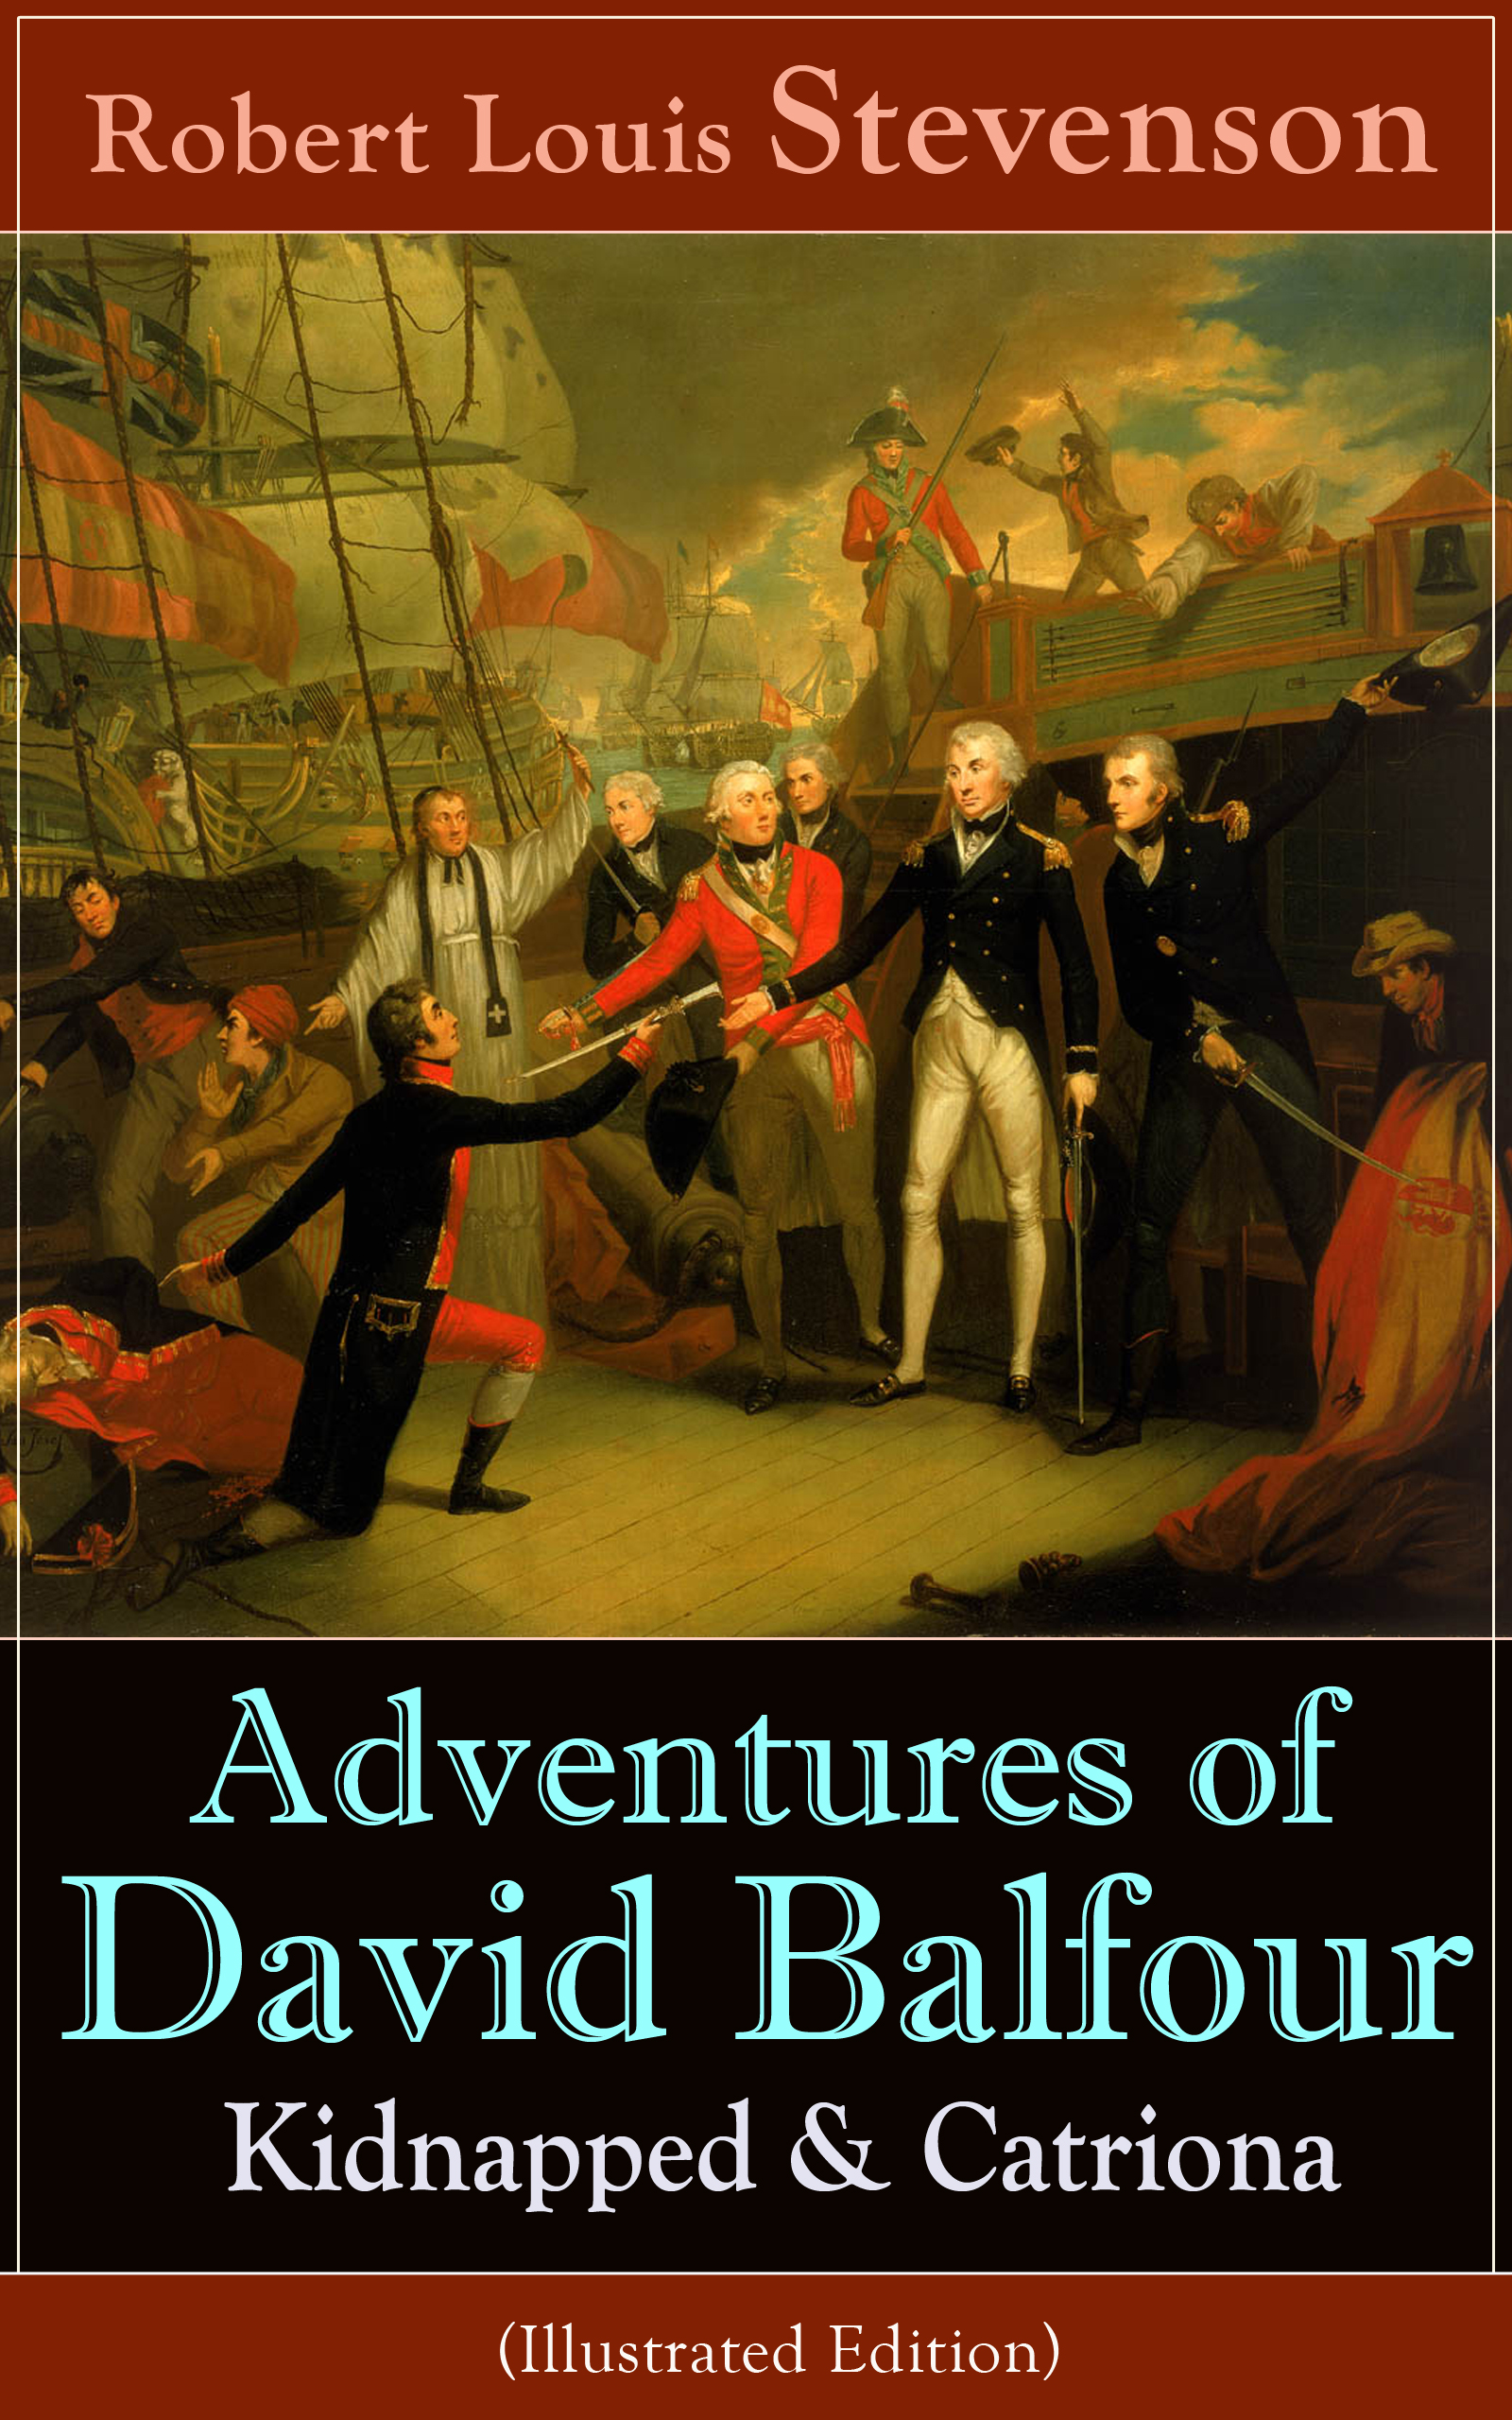 Robert Louis Stevenson Adventures of David Balfour: Kidnapped & Catriona (Illustrated Edition)